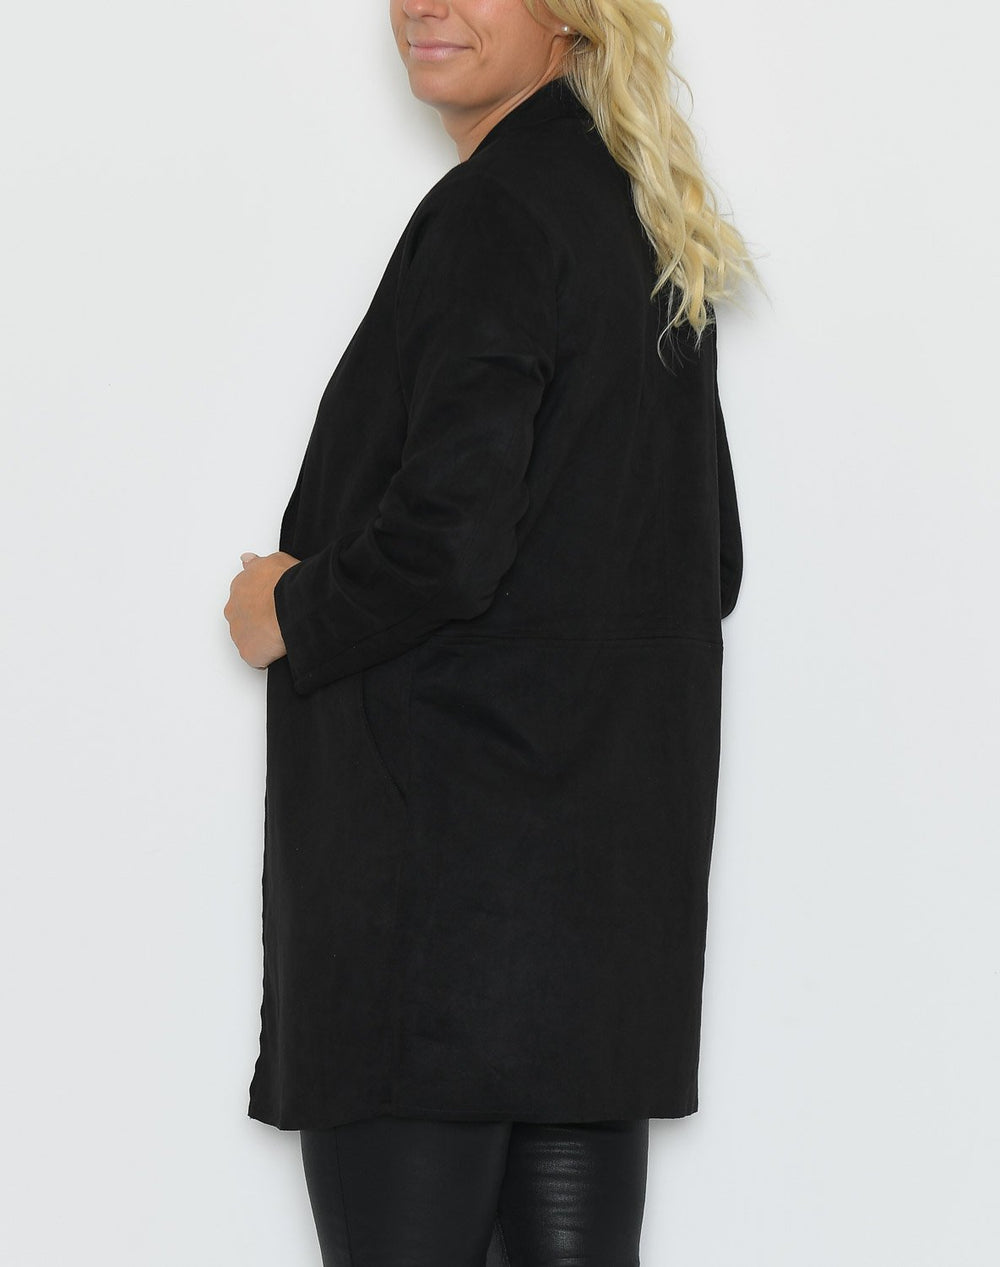 Ofelia Mary long blazer black - Online-Mode